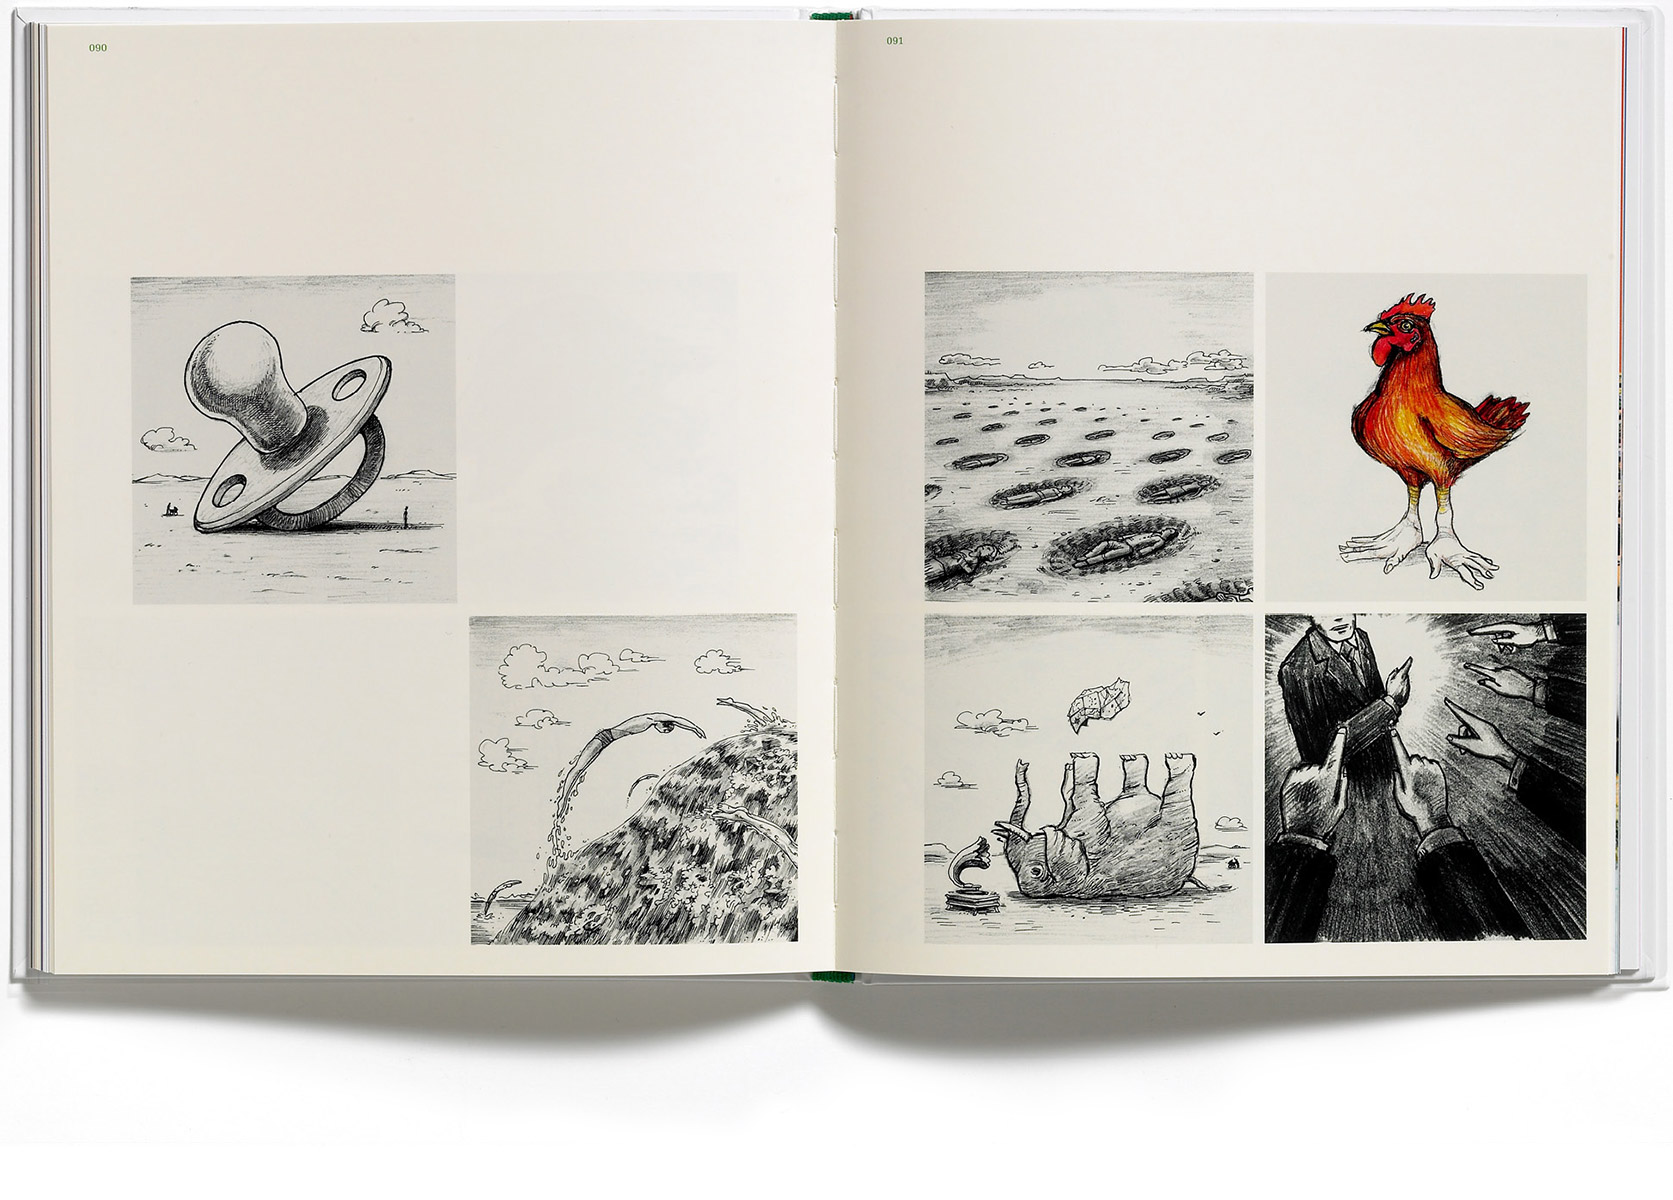 Browns Editions, Storm Thorgerson, Howard Smith Paper Lecture Series